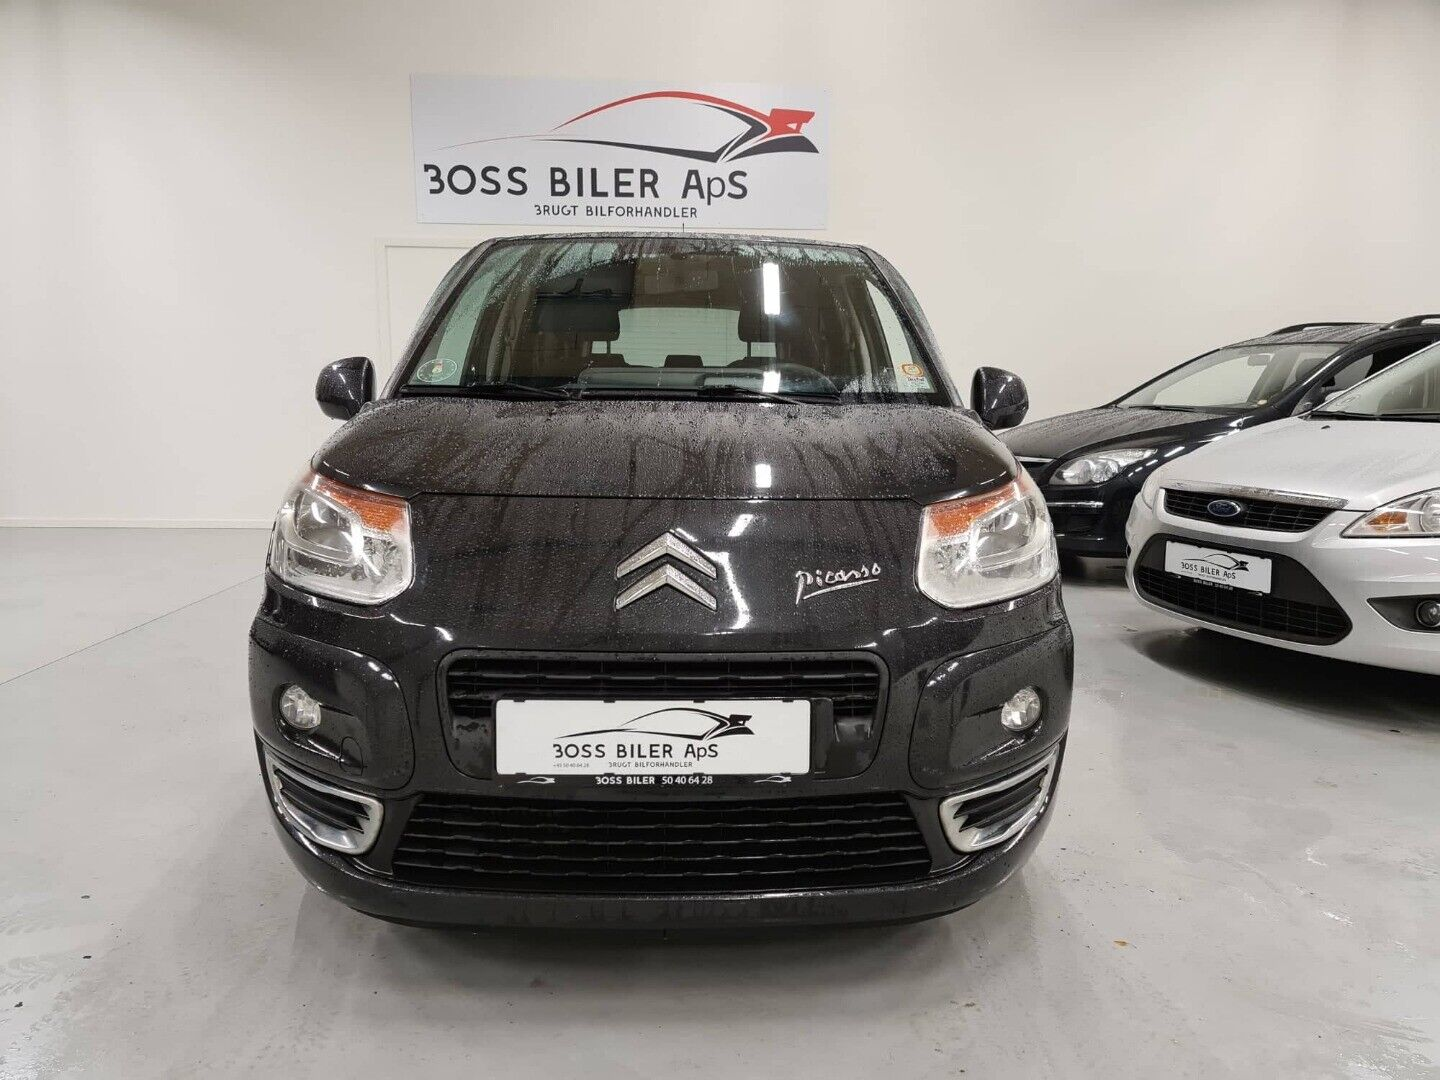 Citroën C3 Picasso 1,6 HDi 90 Comfort 5d